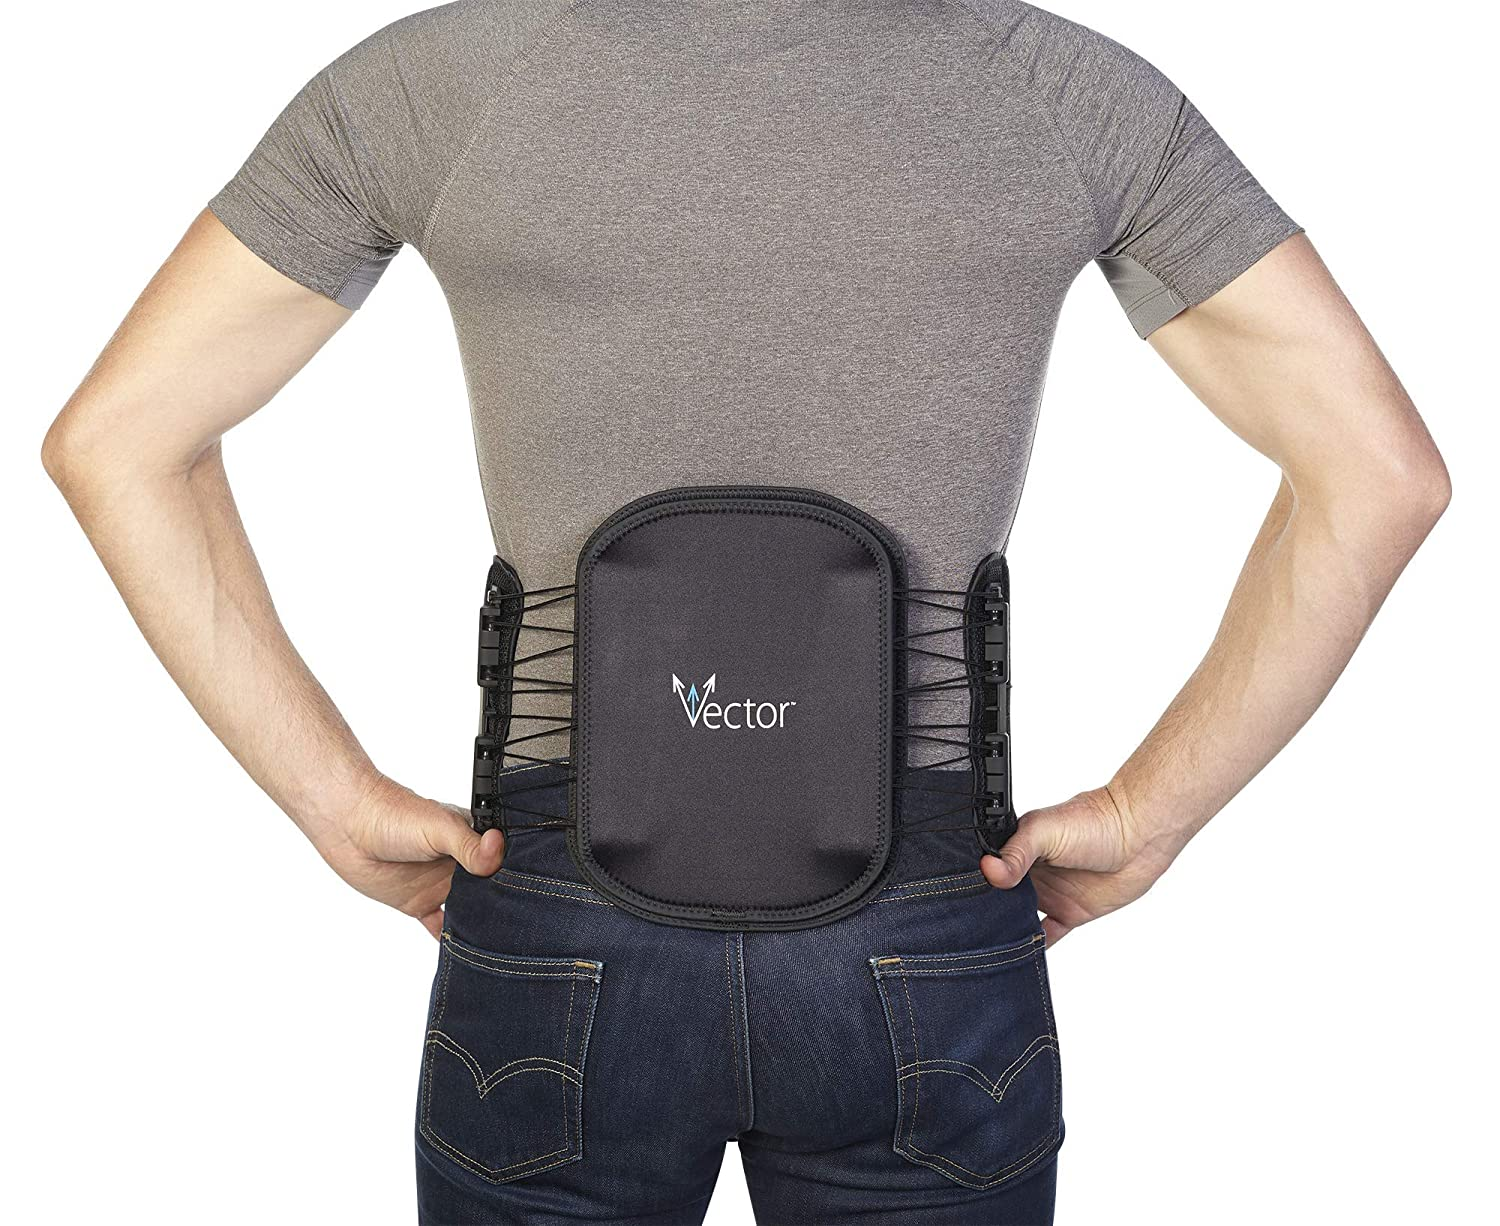 Vector Back Brace - Same day shipping Premium Support for Max 63% OFF Lower Lumbar